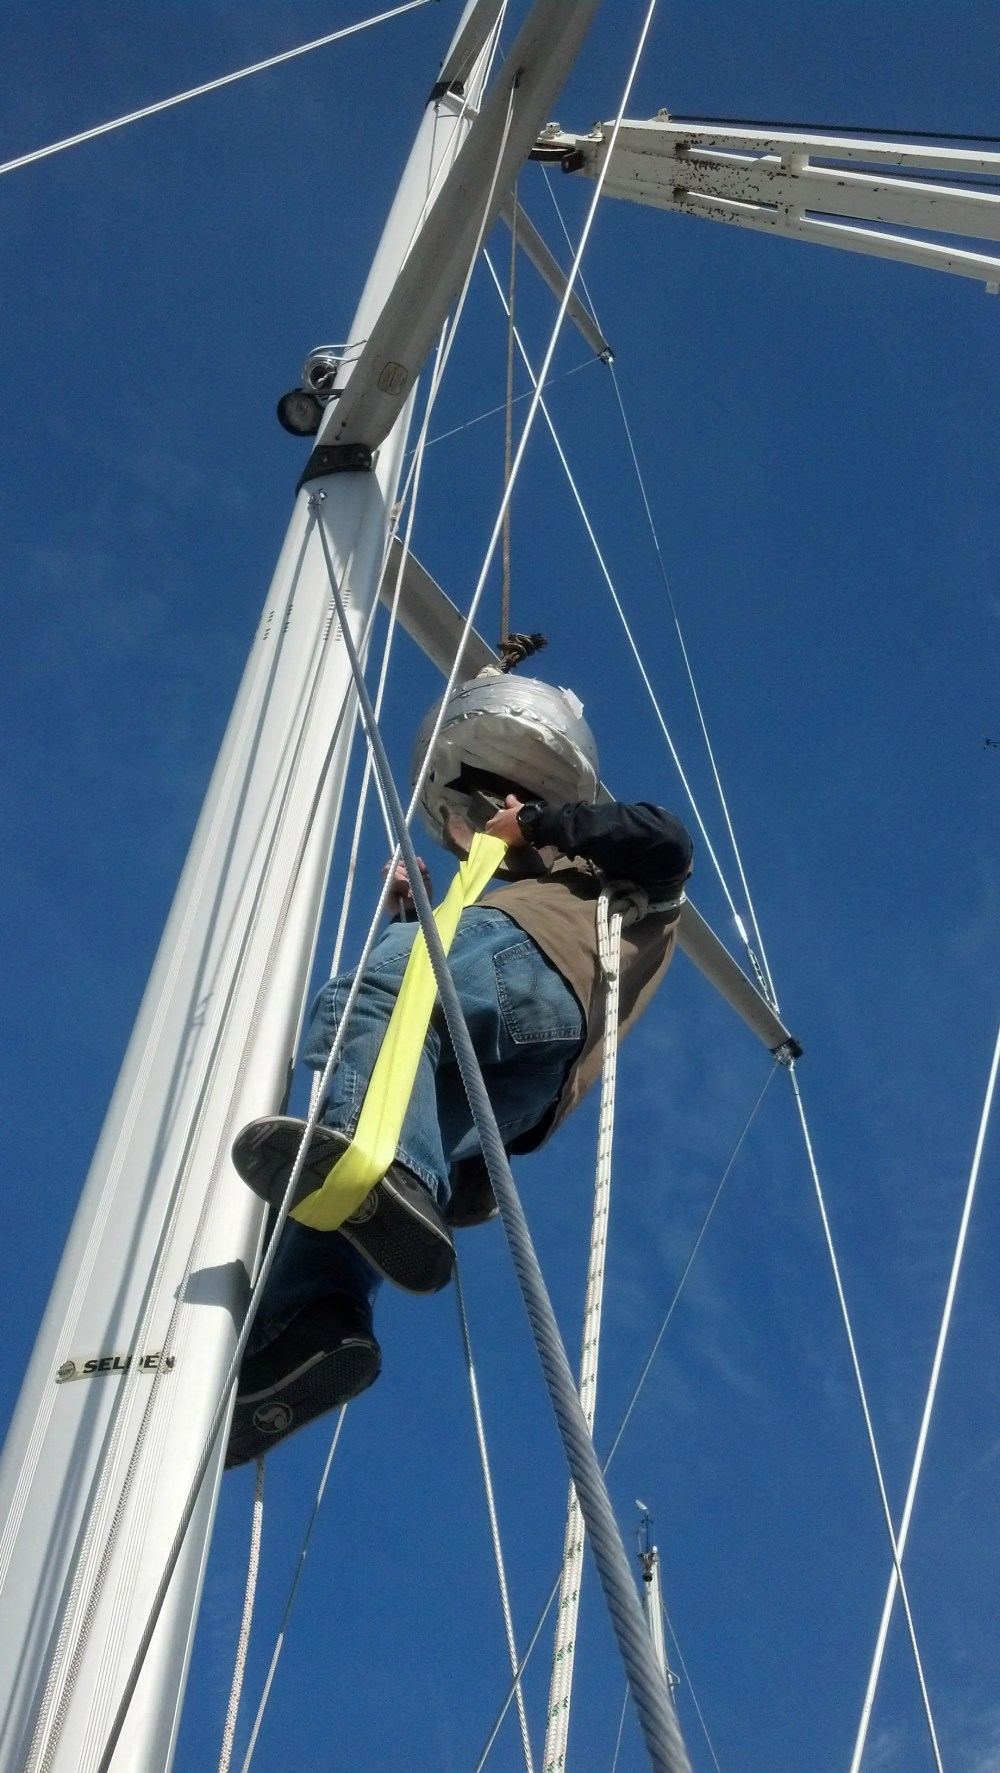 medium resolution of unstepping the mast with a crane when rigging up the lifting gear via a crane gin pole gantry gaff or fork lift it is important to step away form the